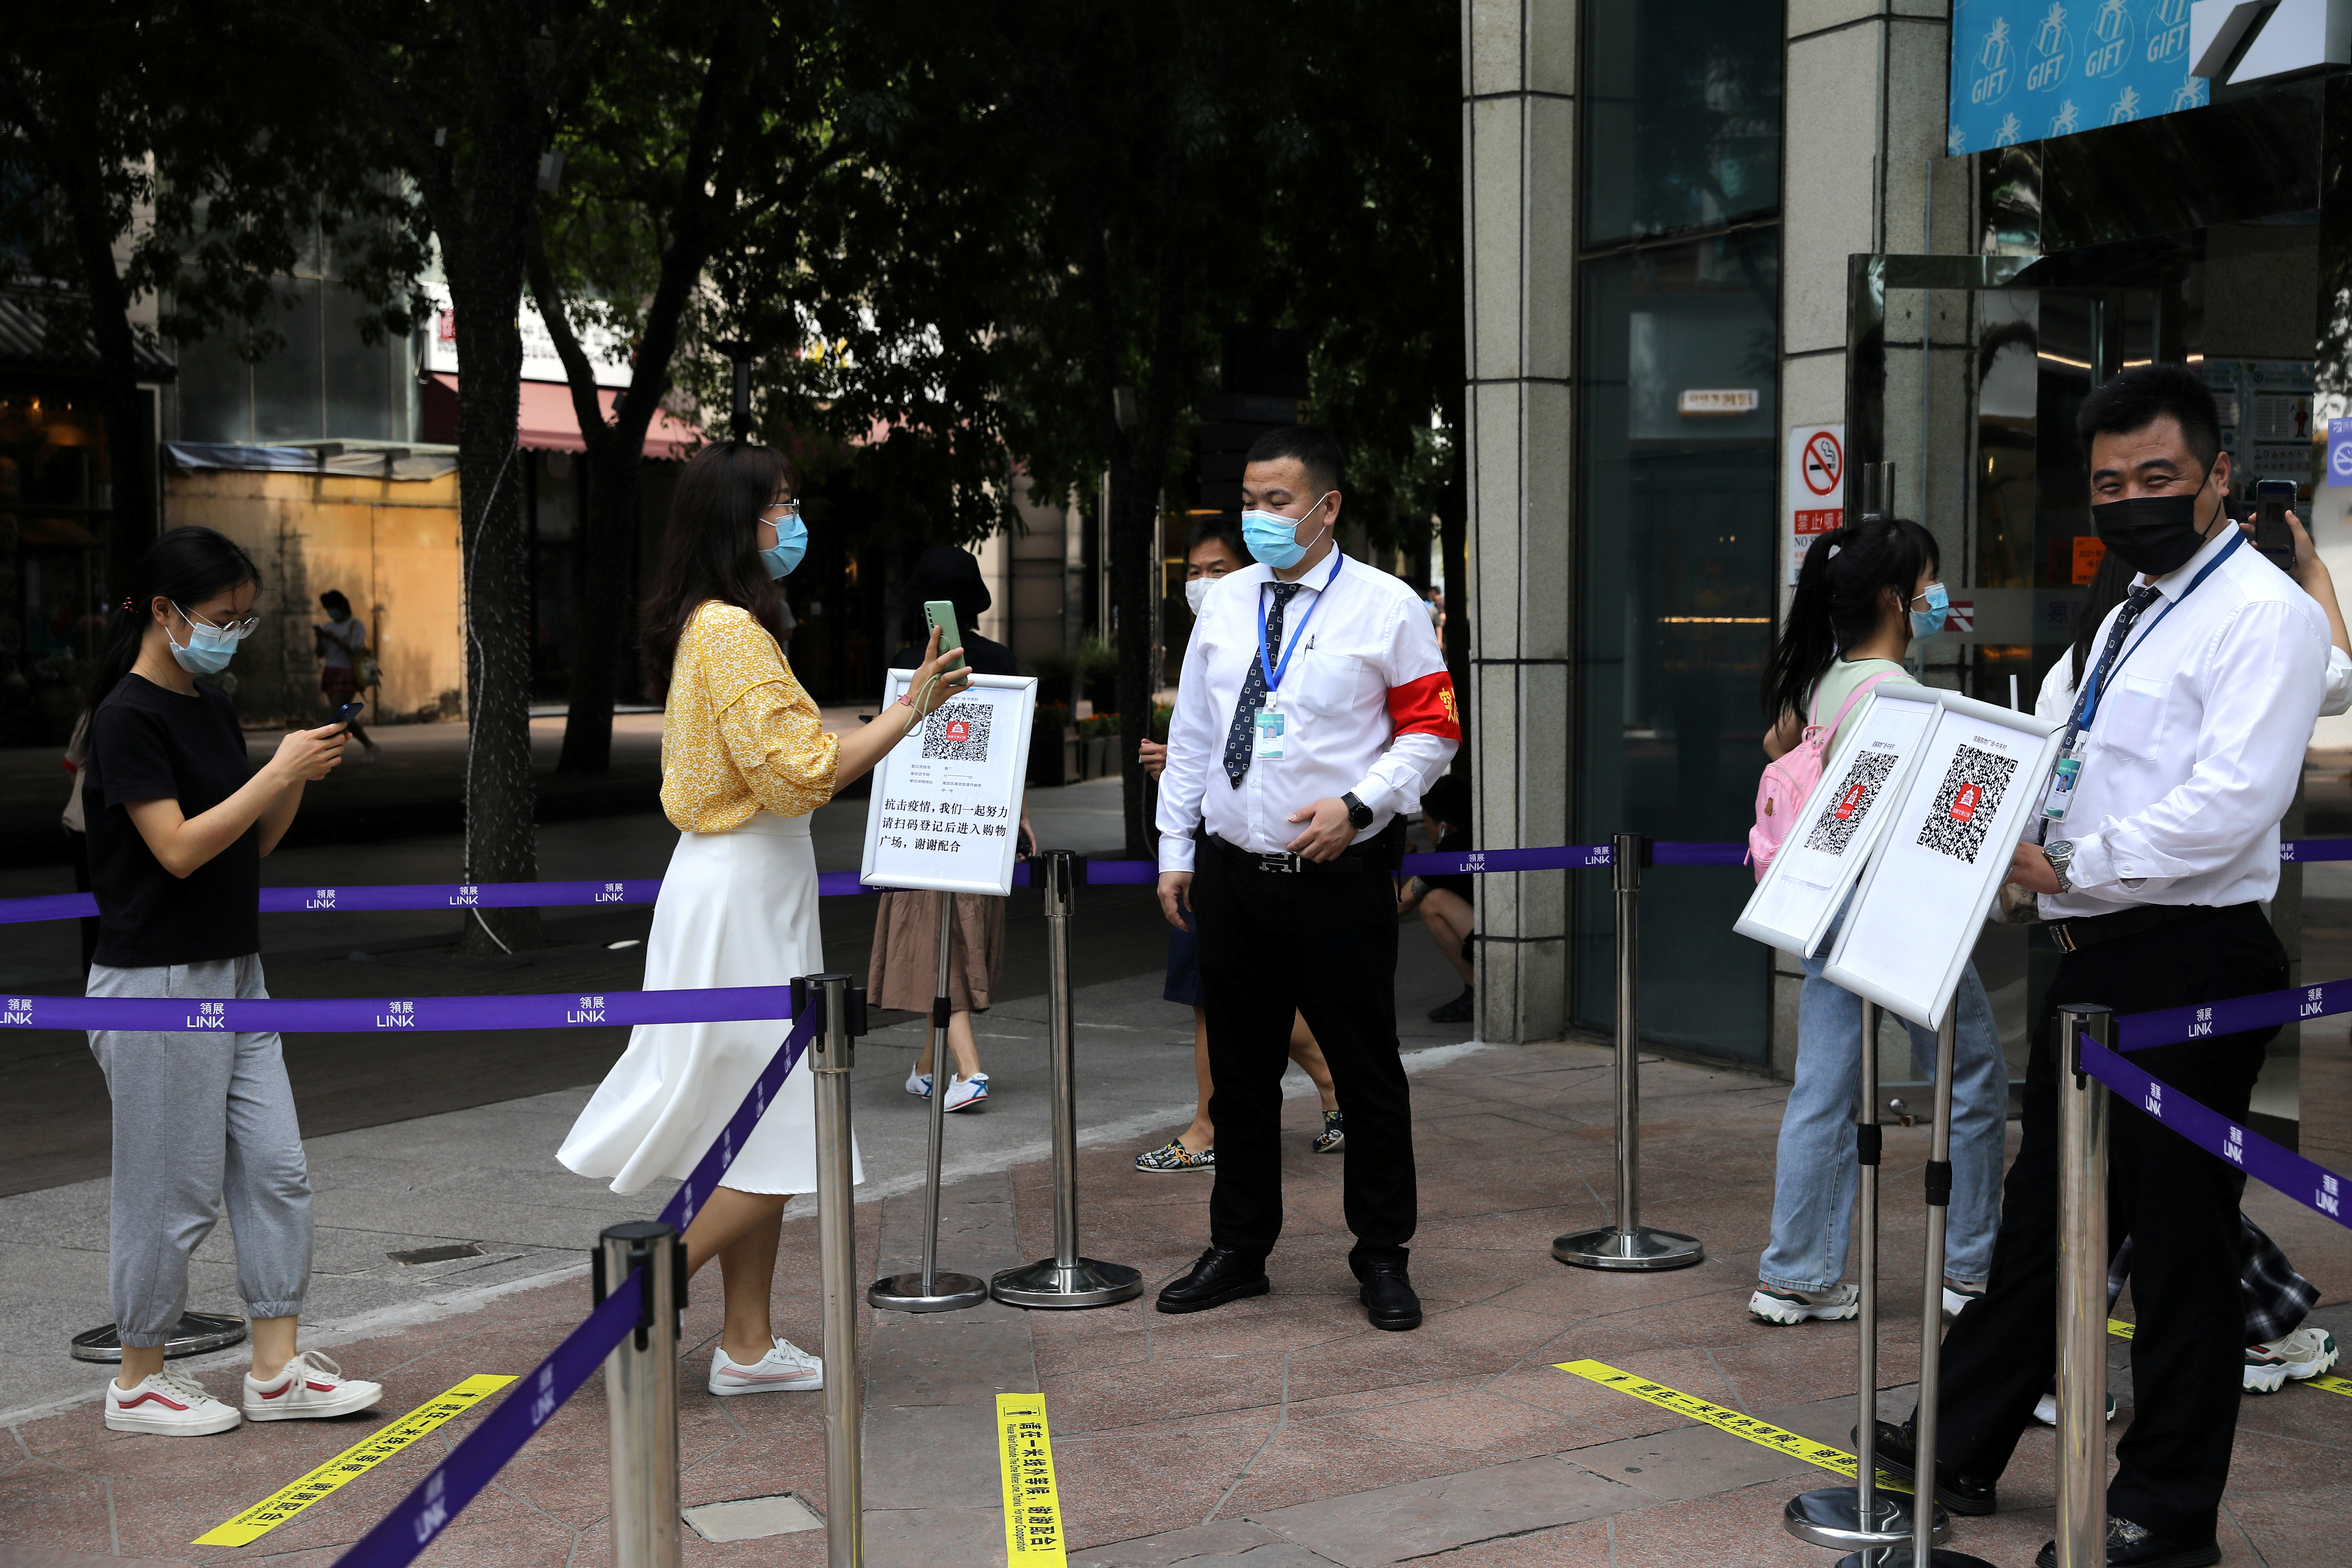 A woman shows her health status on a phone to a security guard, at an entrance of a shopping mall in Beijing, China August 23, 2021. REUTERS/Tingshu Wang/File Photo